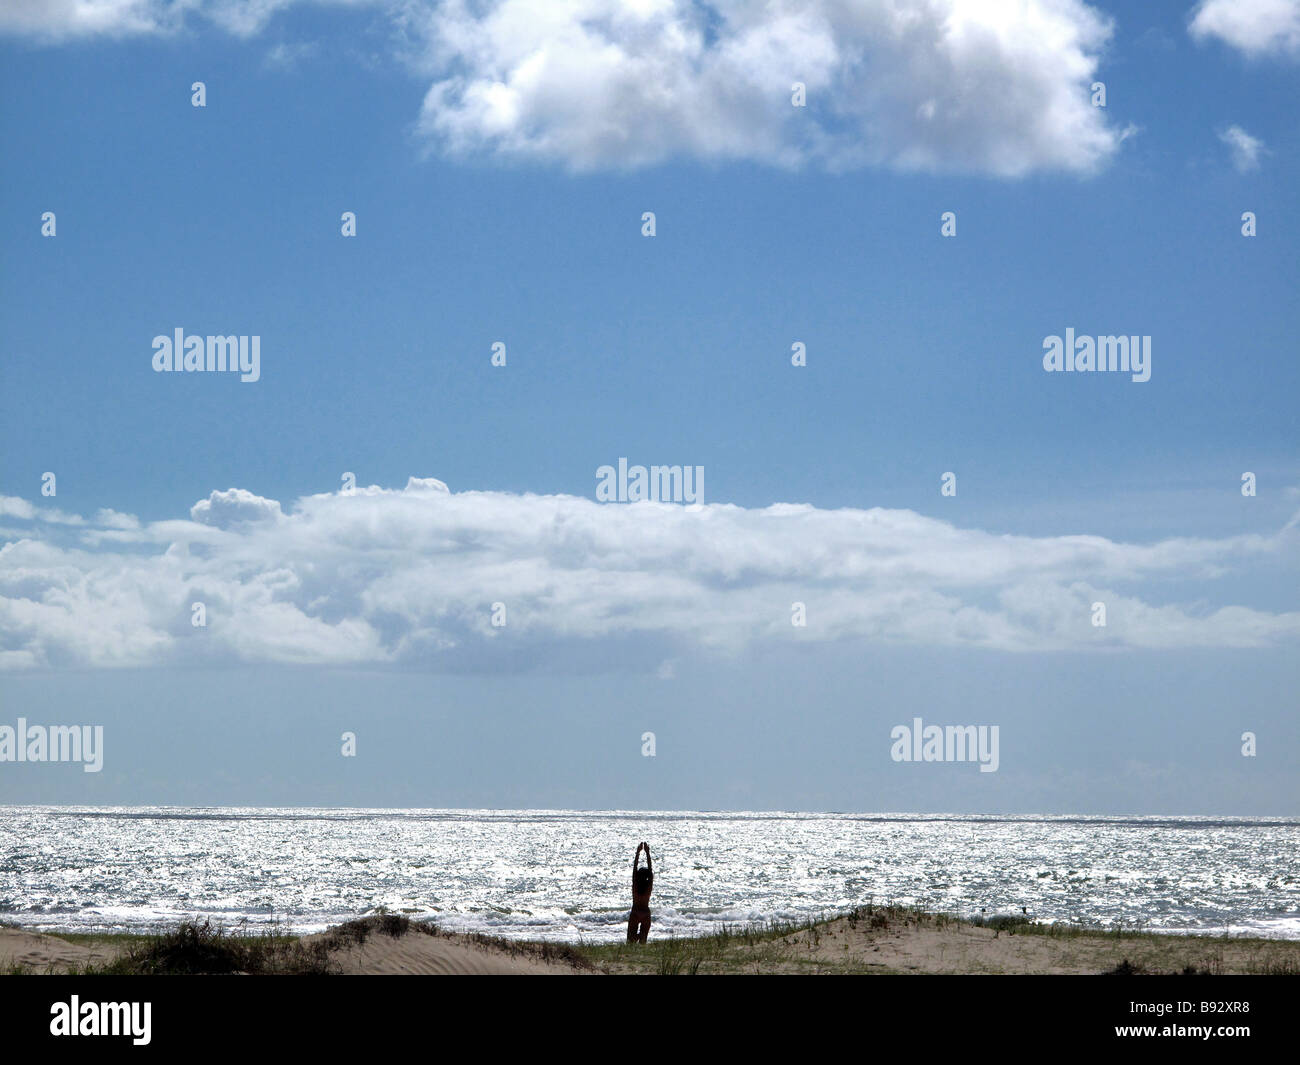 A woman performing yoga exercises by the beach in the morning - Stock Image